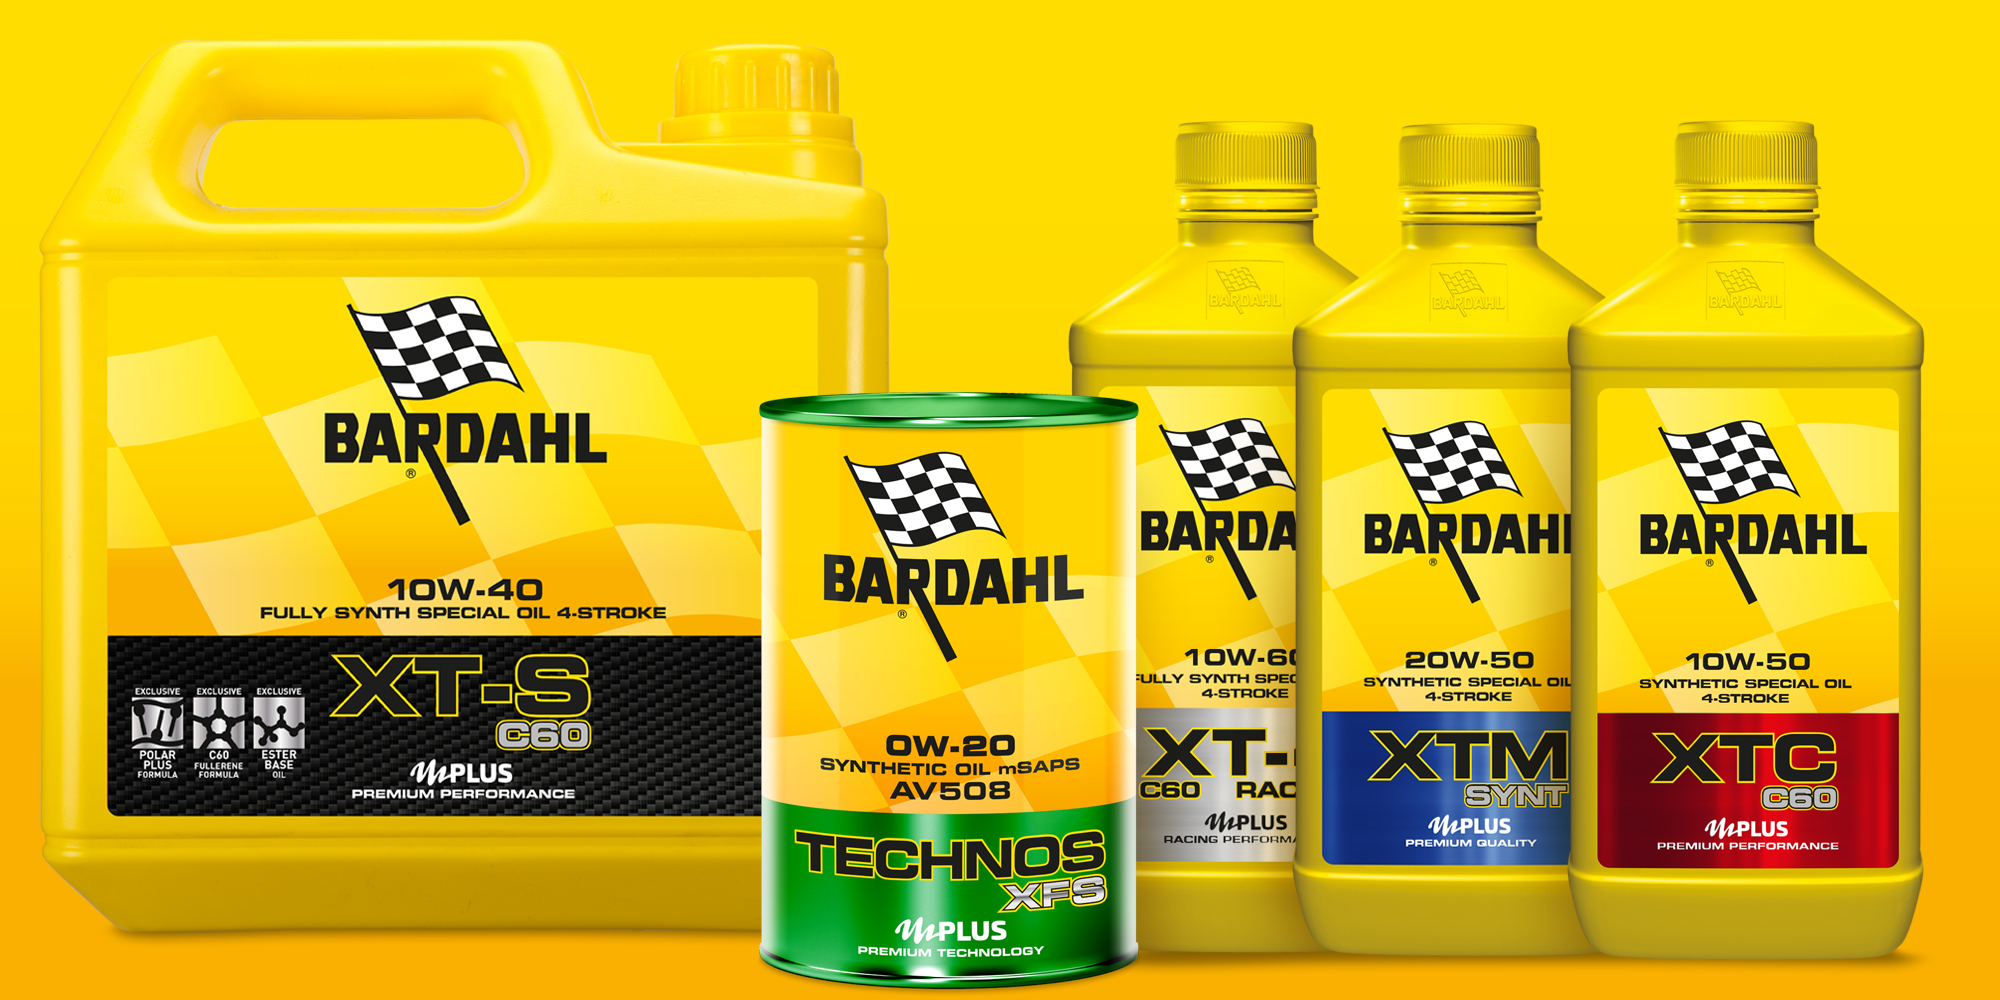 Bardahl packaging design